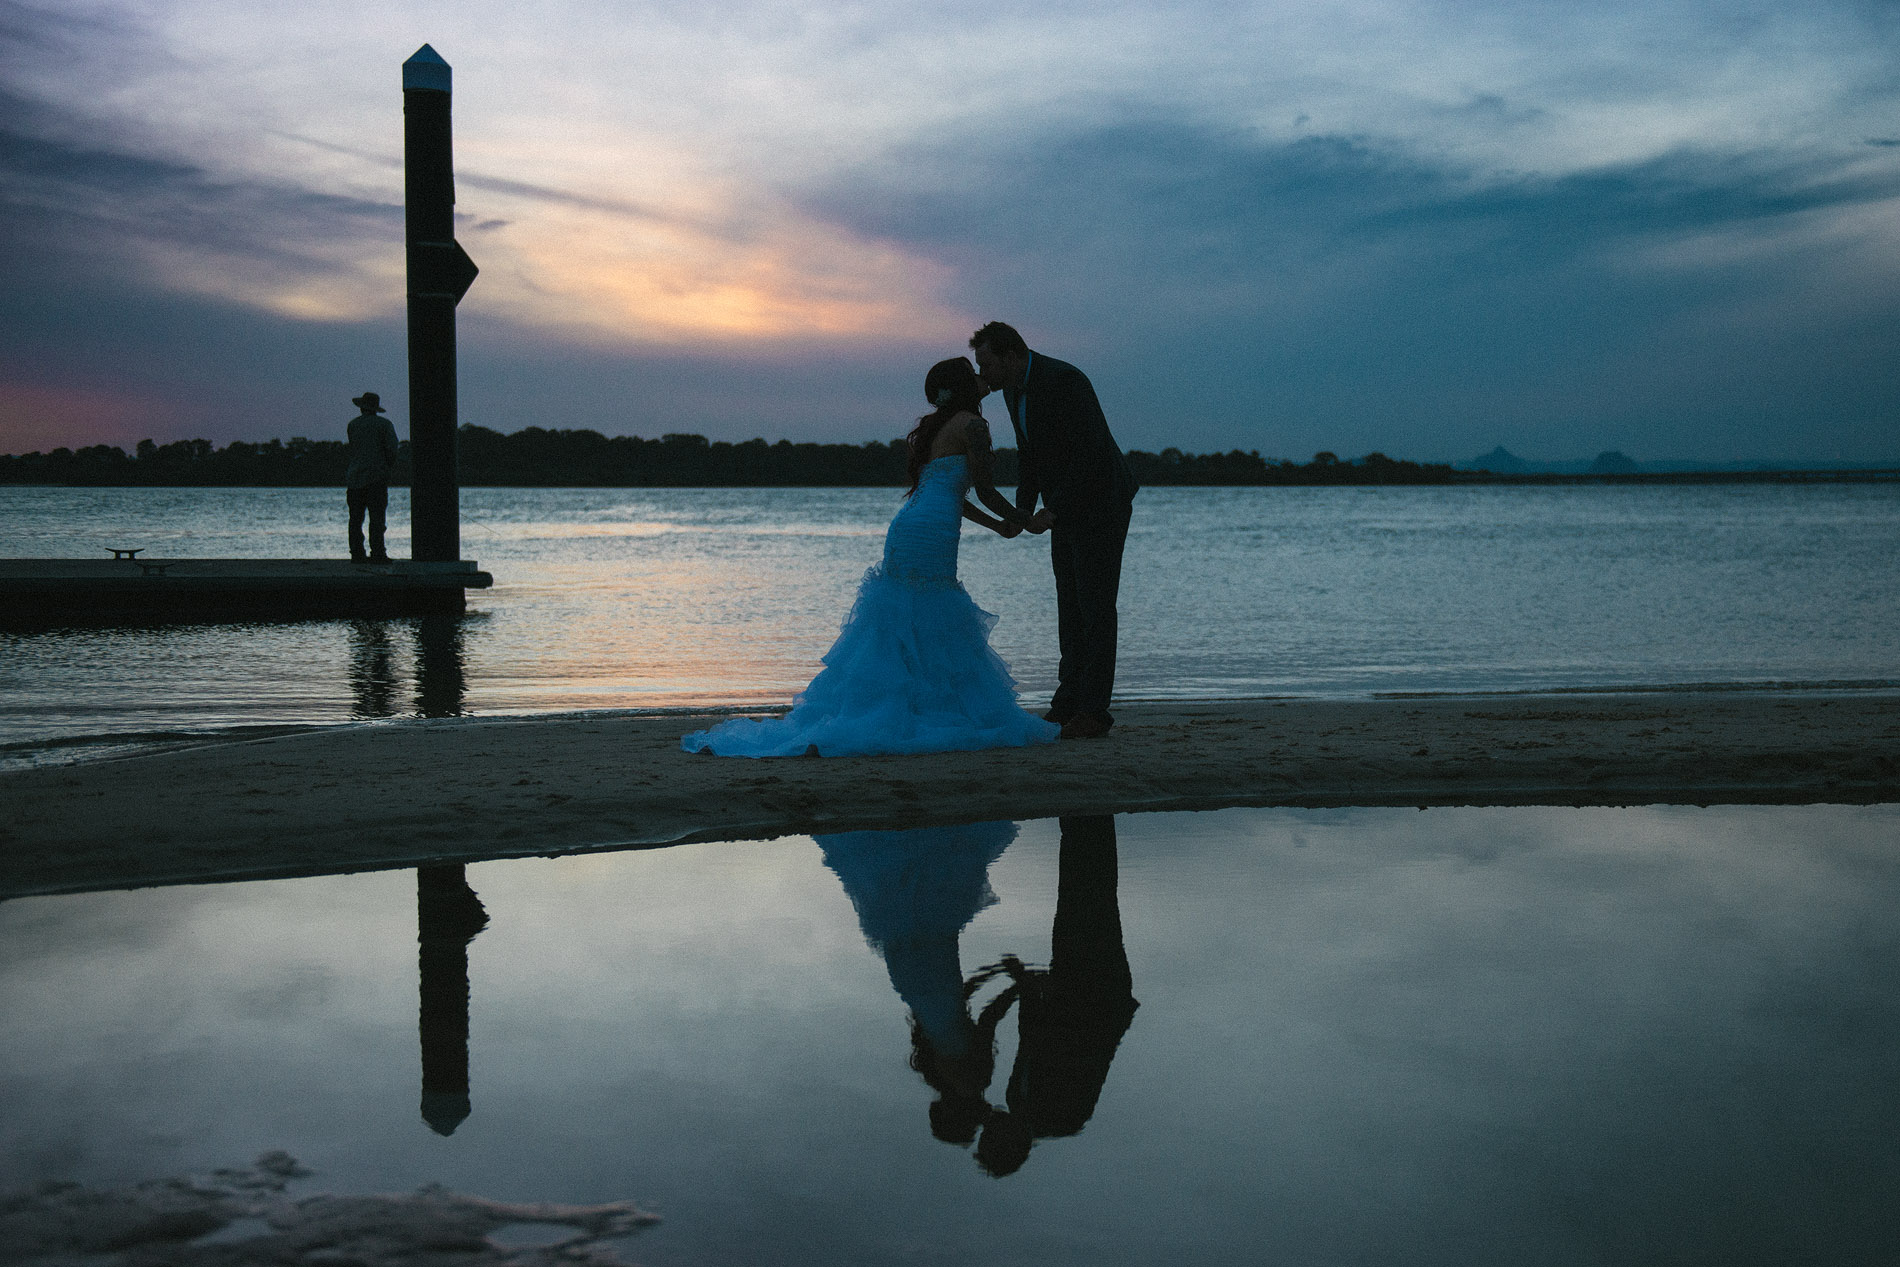 170909 0666 bribie island dusk sunset bongaree jetty beach fisherman epic landscape kiss wedding